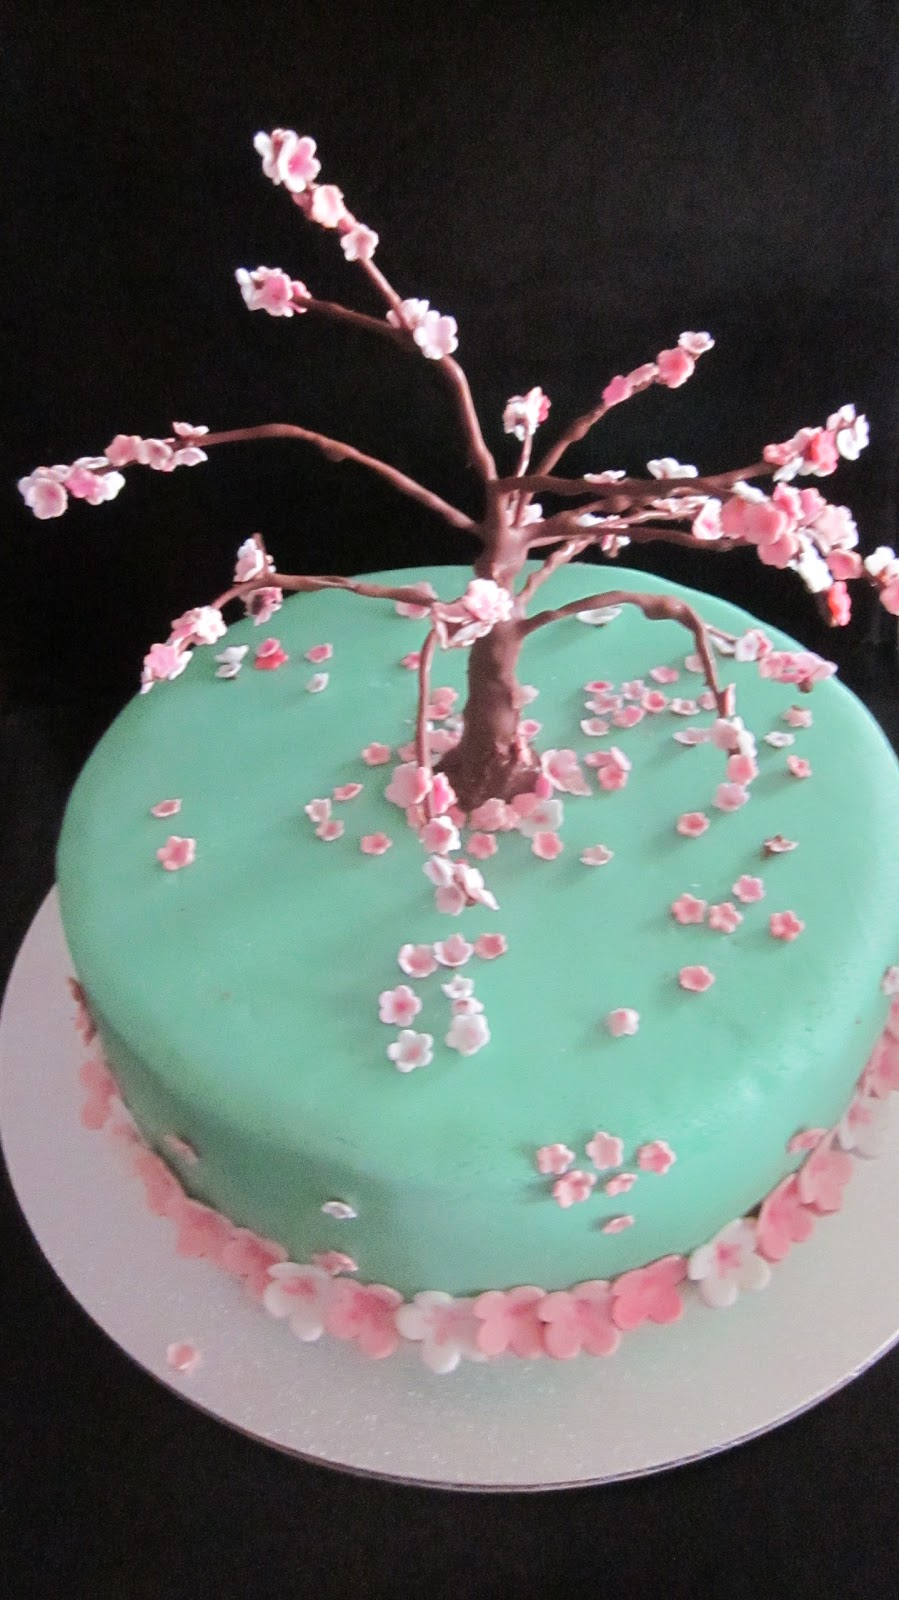 Deb S Cakes And Cupcakes Cherry Blossom Cake